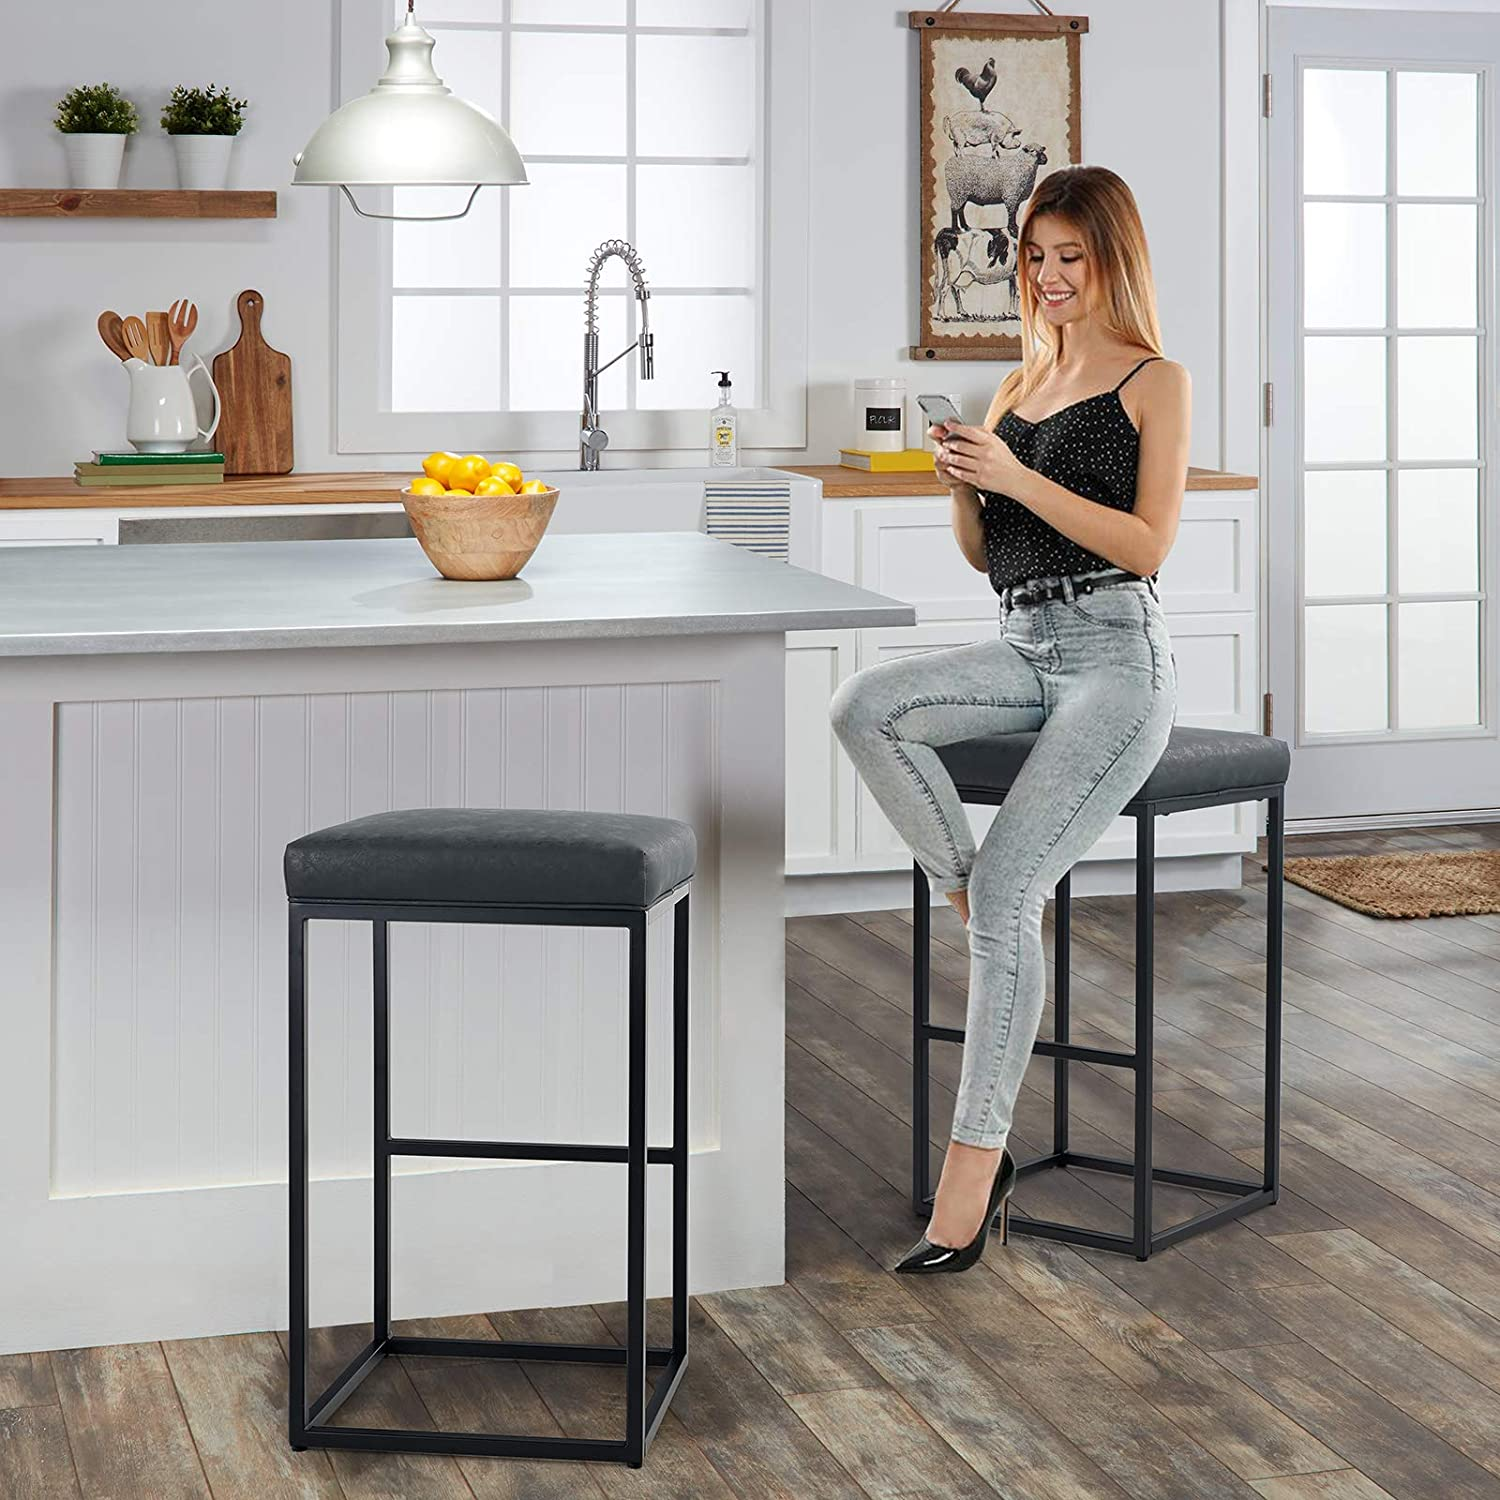 MAISON ARTS Bar Height 9 Inch Bar Stools Set of 9 for Kitchen Counter  Backless Industrial Stool Modern Upholstered Barstool Countertop Saddle  Chair ...